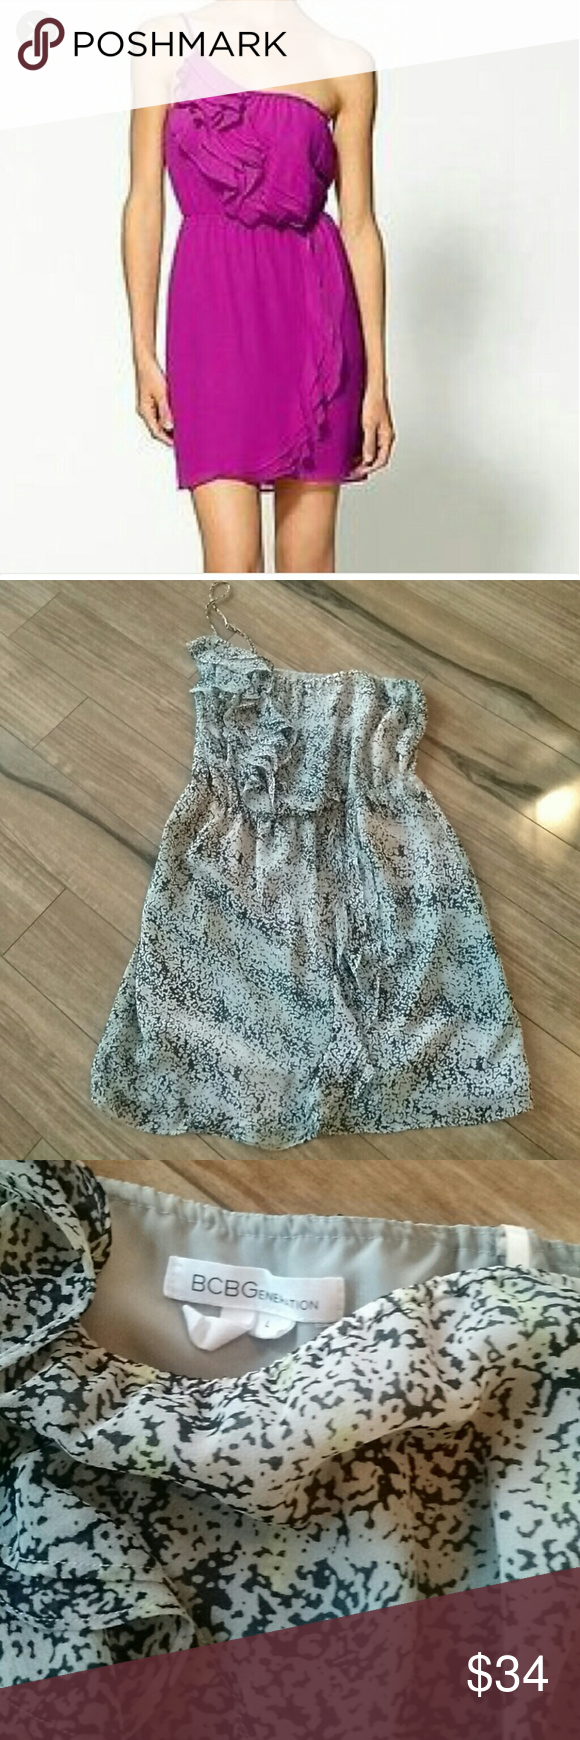 NWOT Bcbgeneration ruffle one shoulder dress! New without tags! Multicolor & lined with pockets dress! One shoulder with ruffle all the way to the bottom of the dress. Great for summer! BCBGeneration Dresses